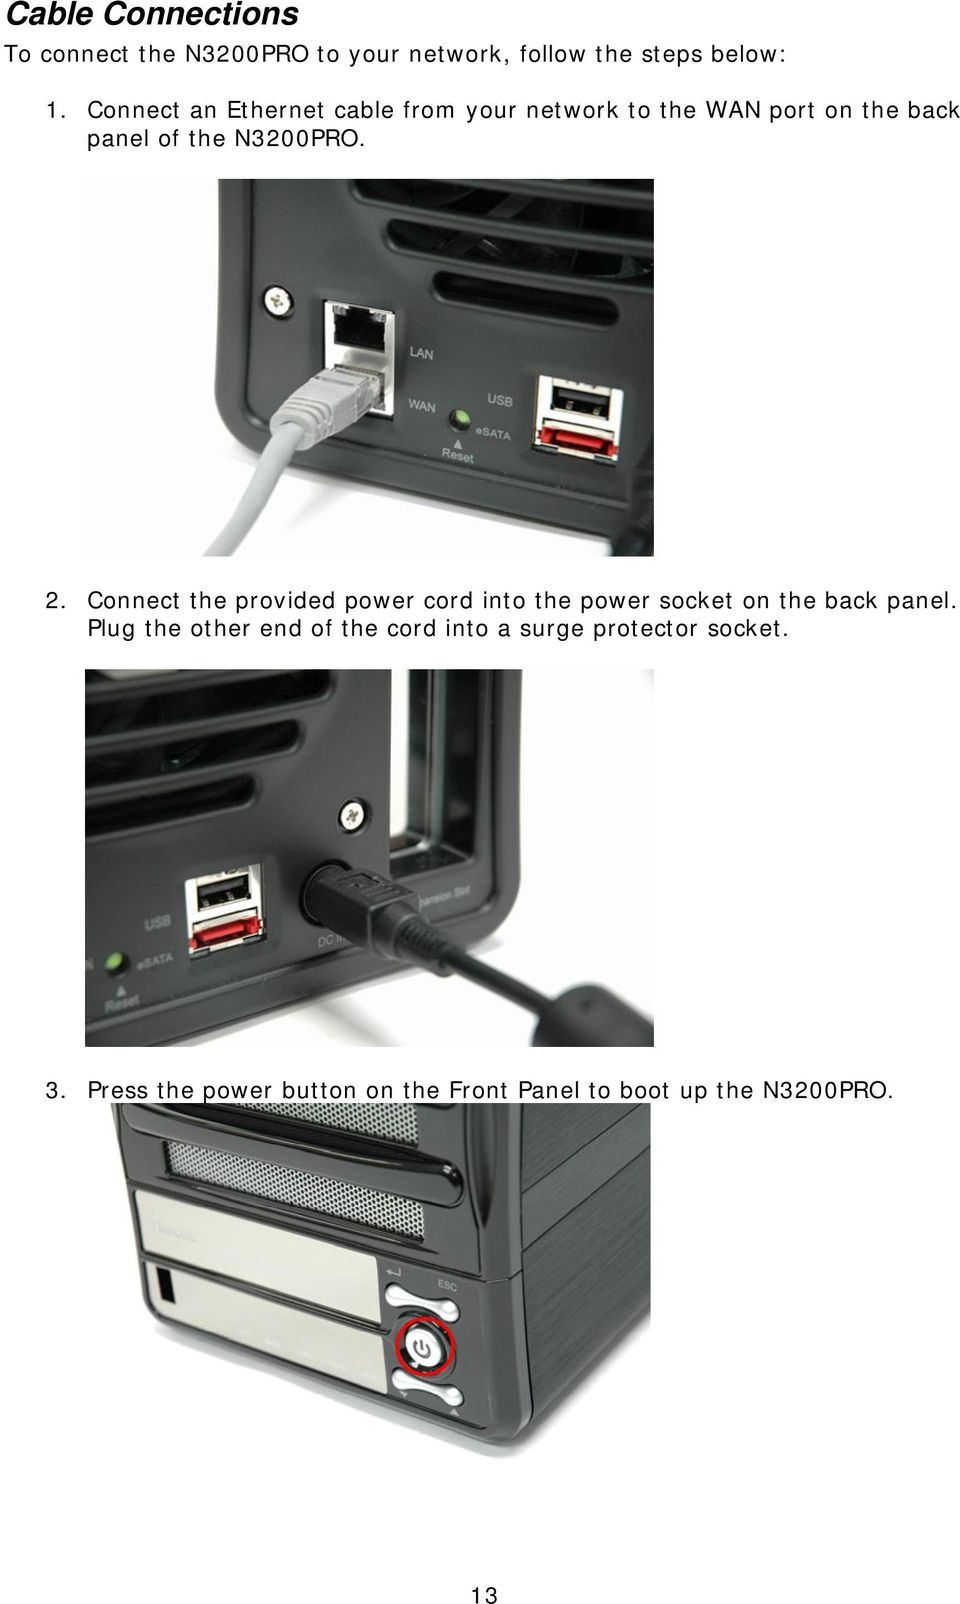 Connect the provided power cord into the power socket on the back panel.